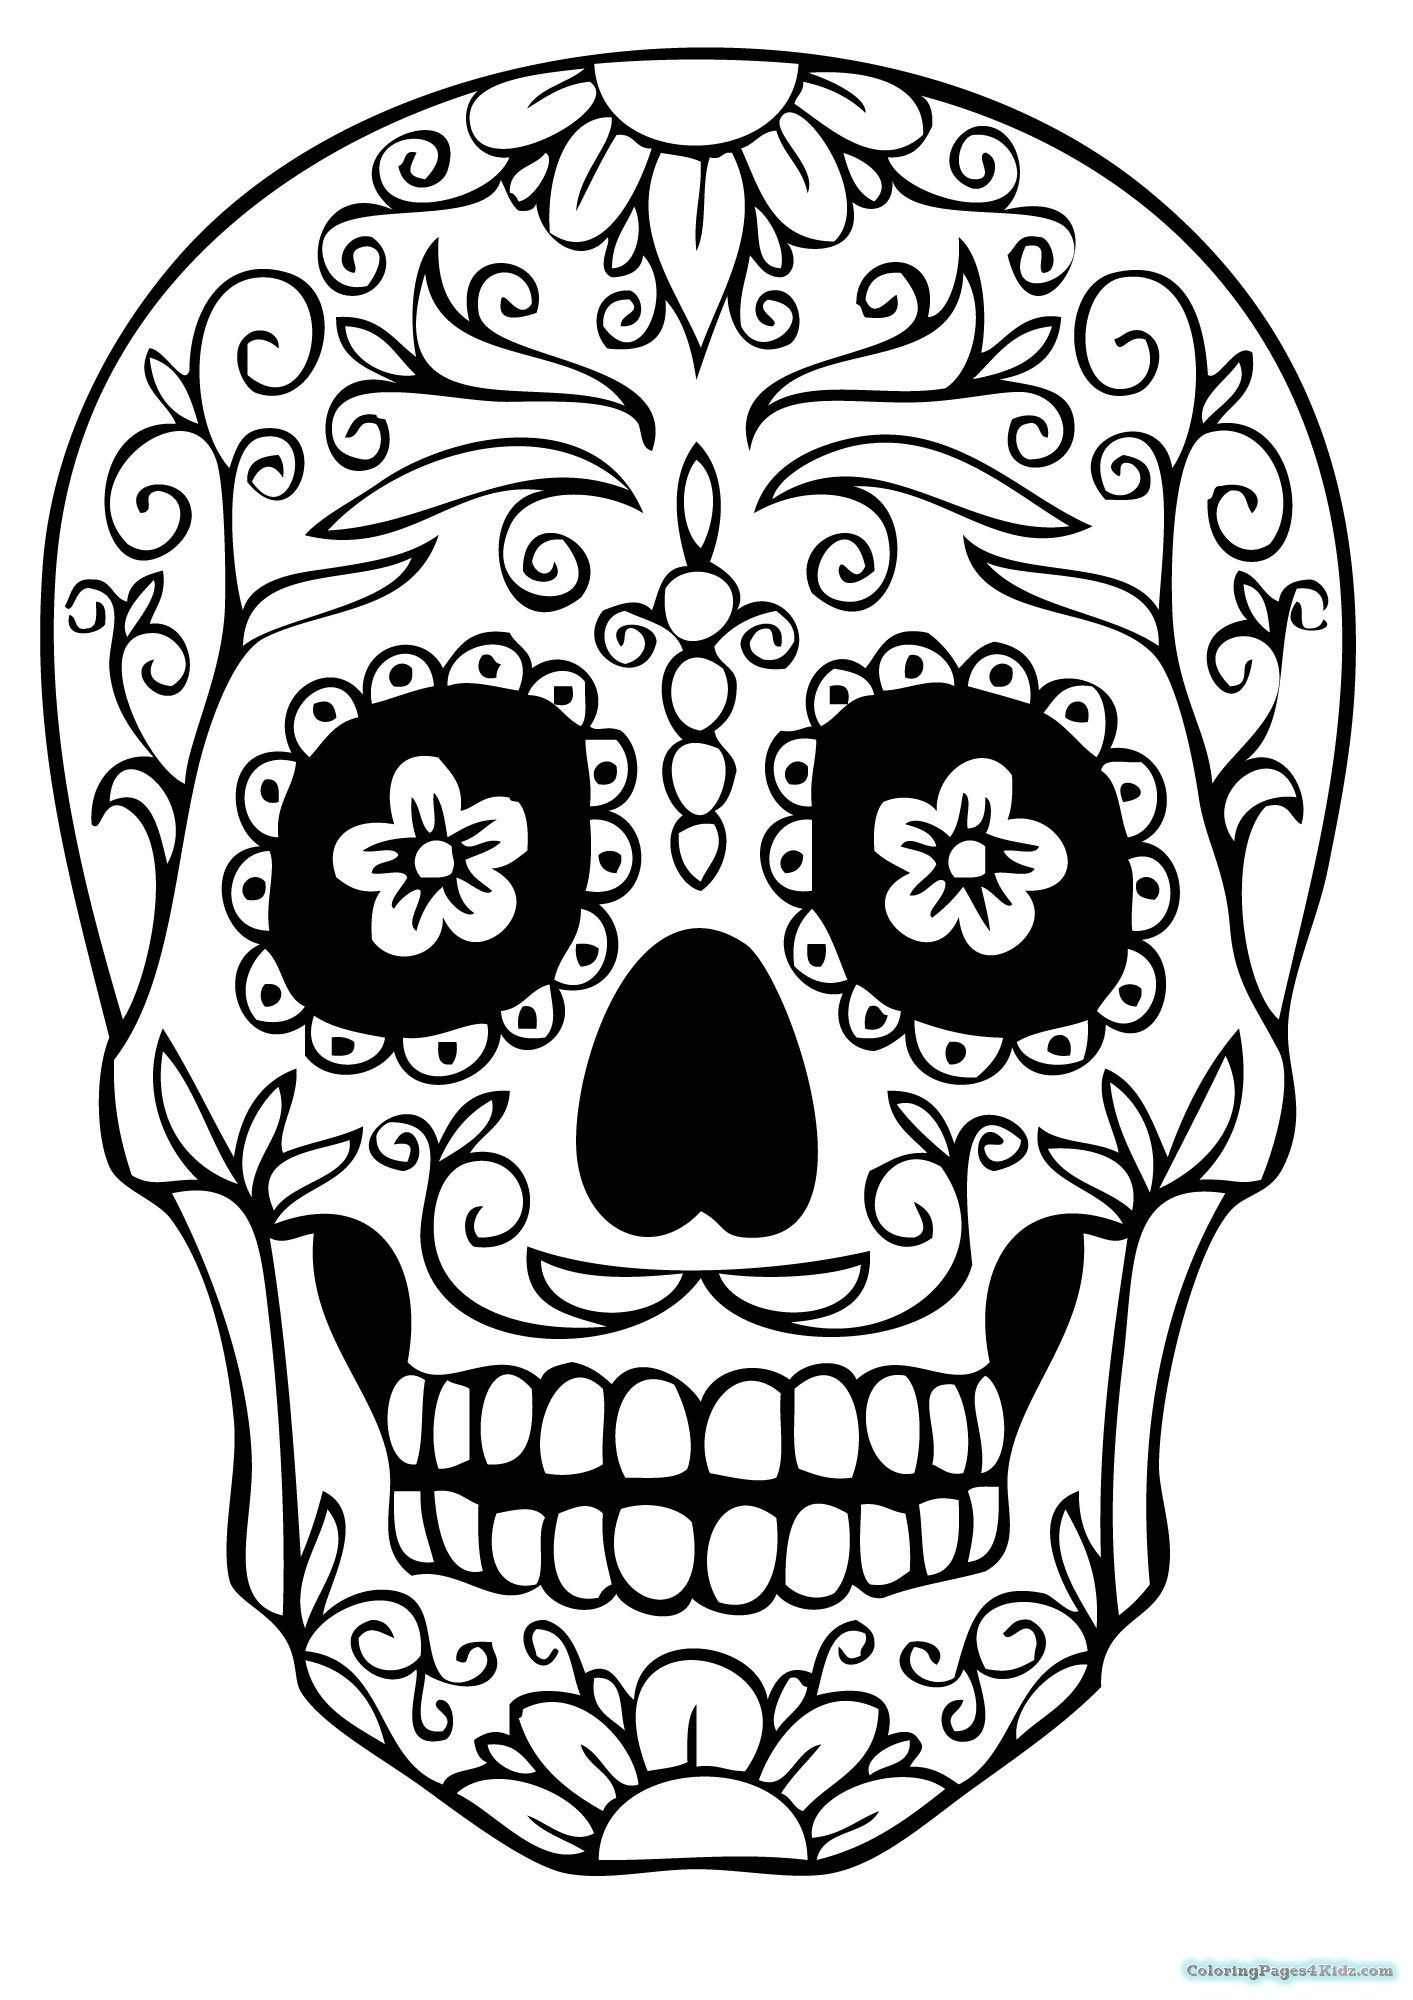 Day Of The Dead Skull Drawing Easy : skull, drawing, Sugar, Skull, Template, Drawing, Documents, Download, Extra, Large, Print, Coloring, Pages,, Drawing,